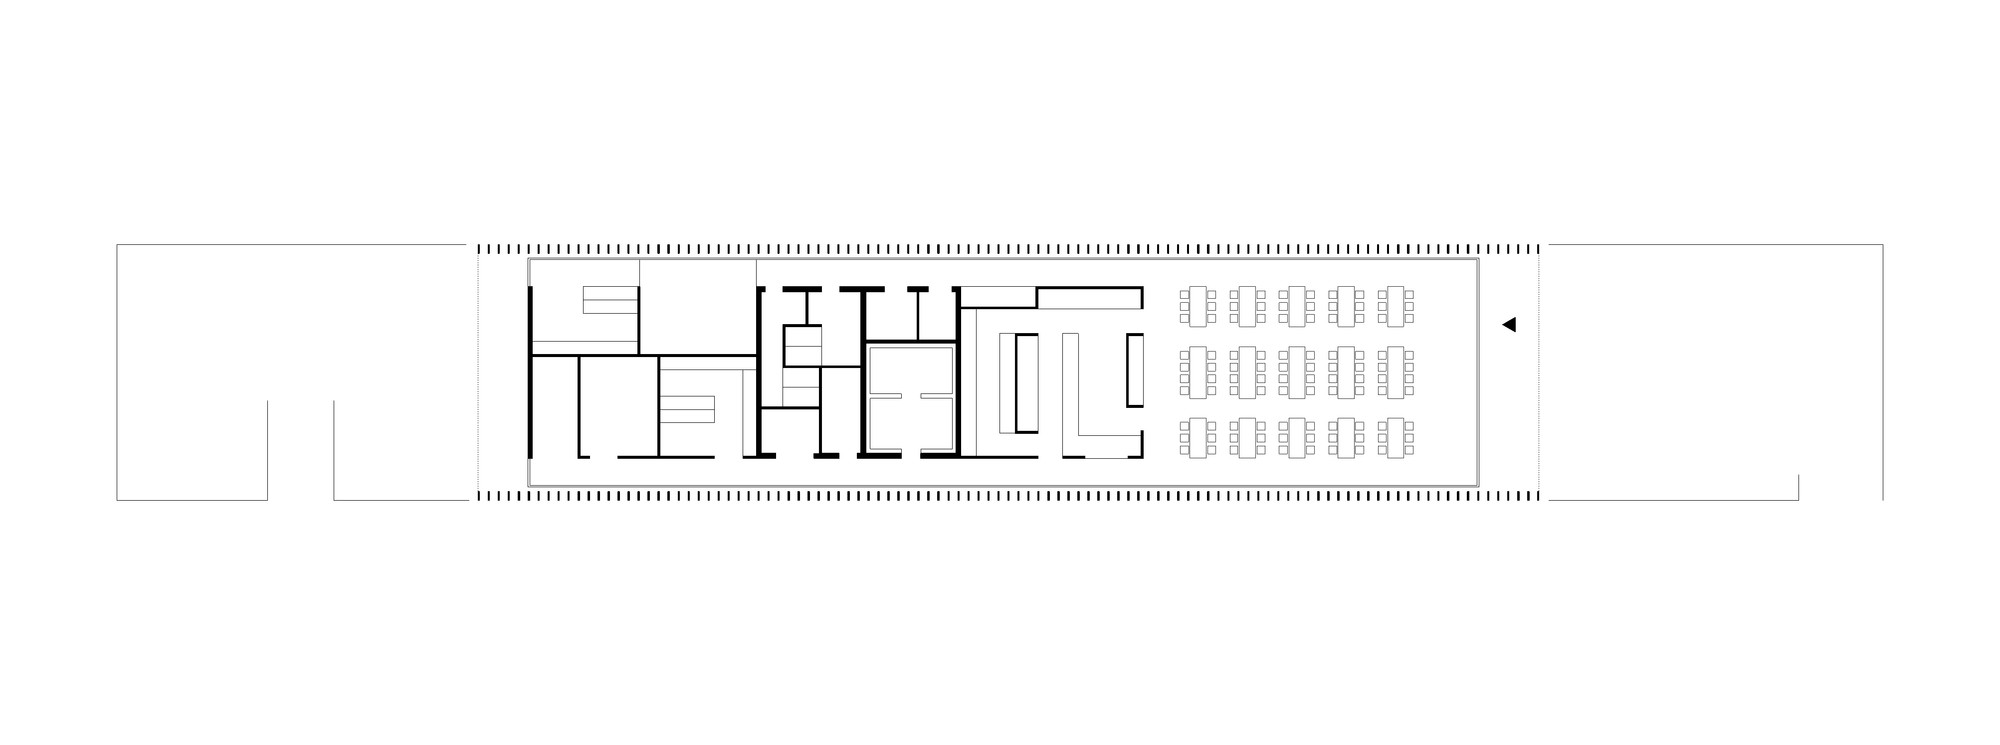 cafeteria at the university aalen mgf architekten cafeteria floor plan layouts floor free download home